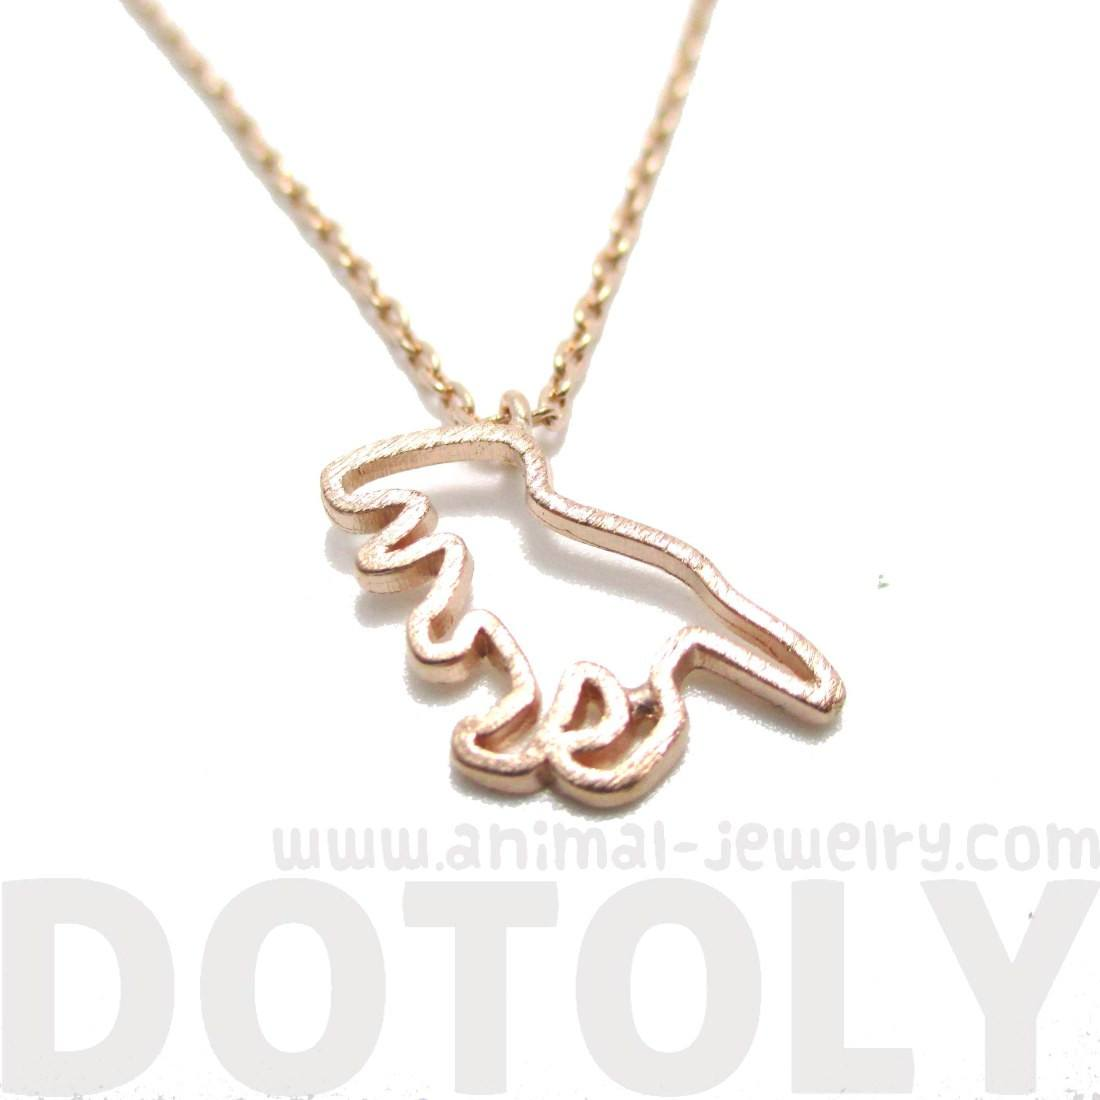 T-Rex Dinosaur Outline Charm Necklace in Rose Gold